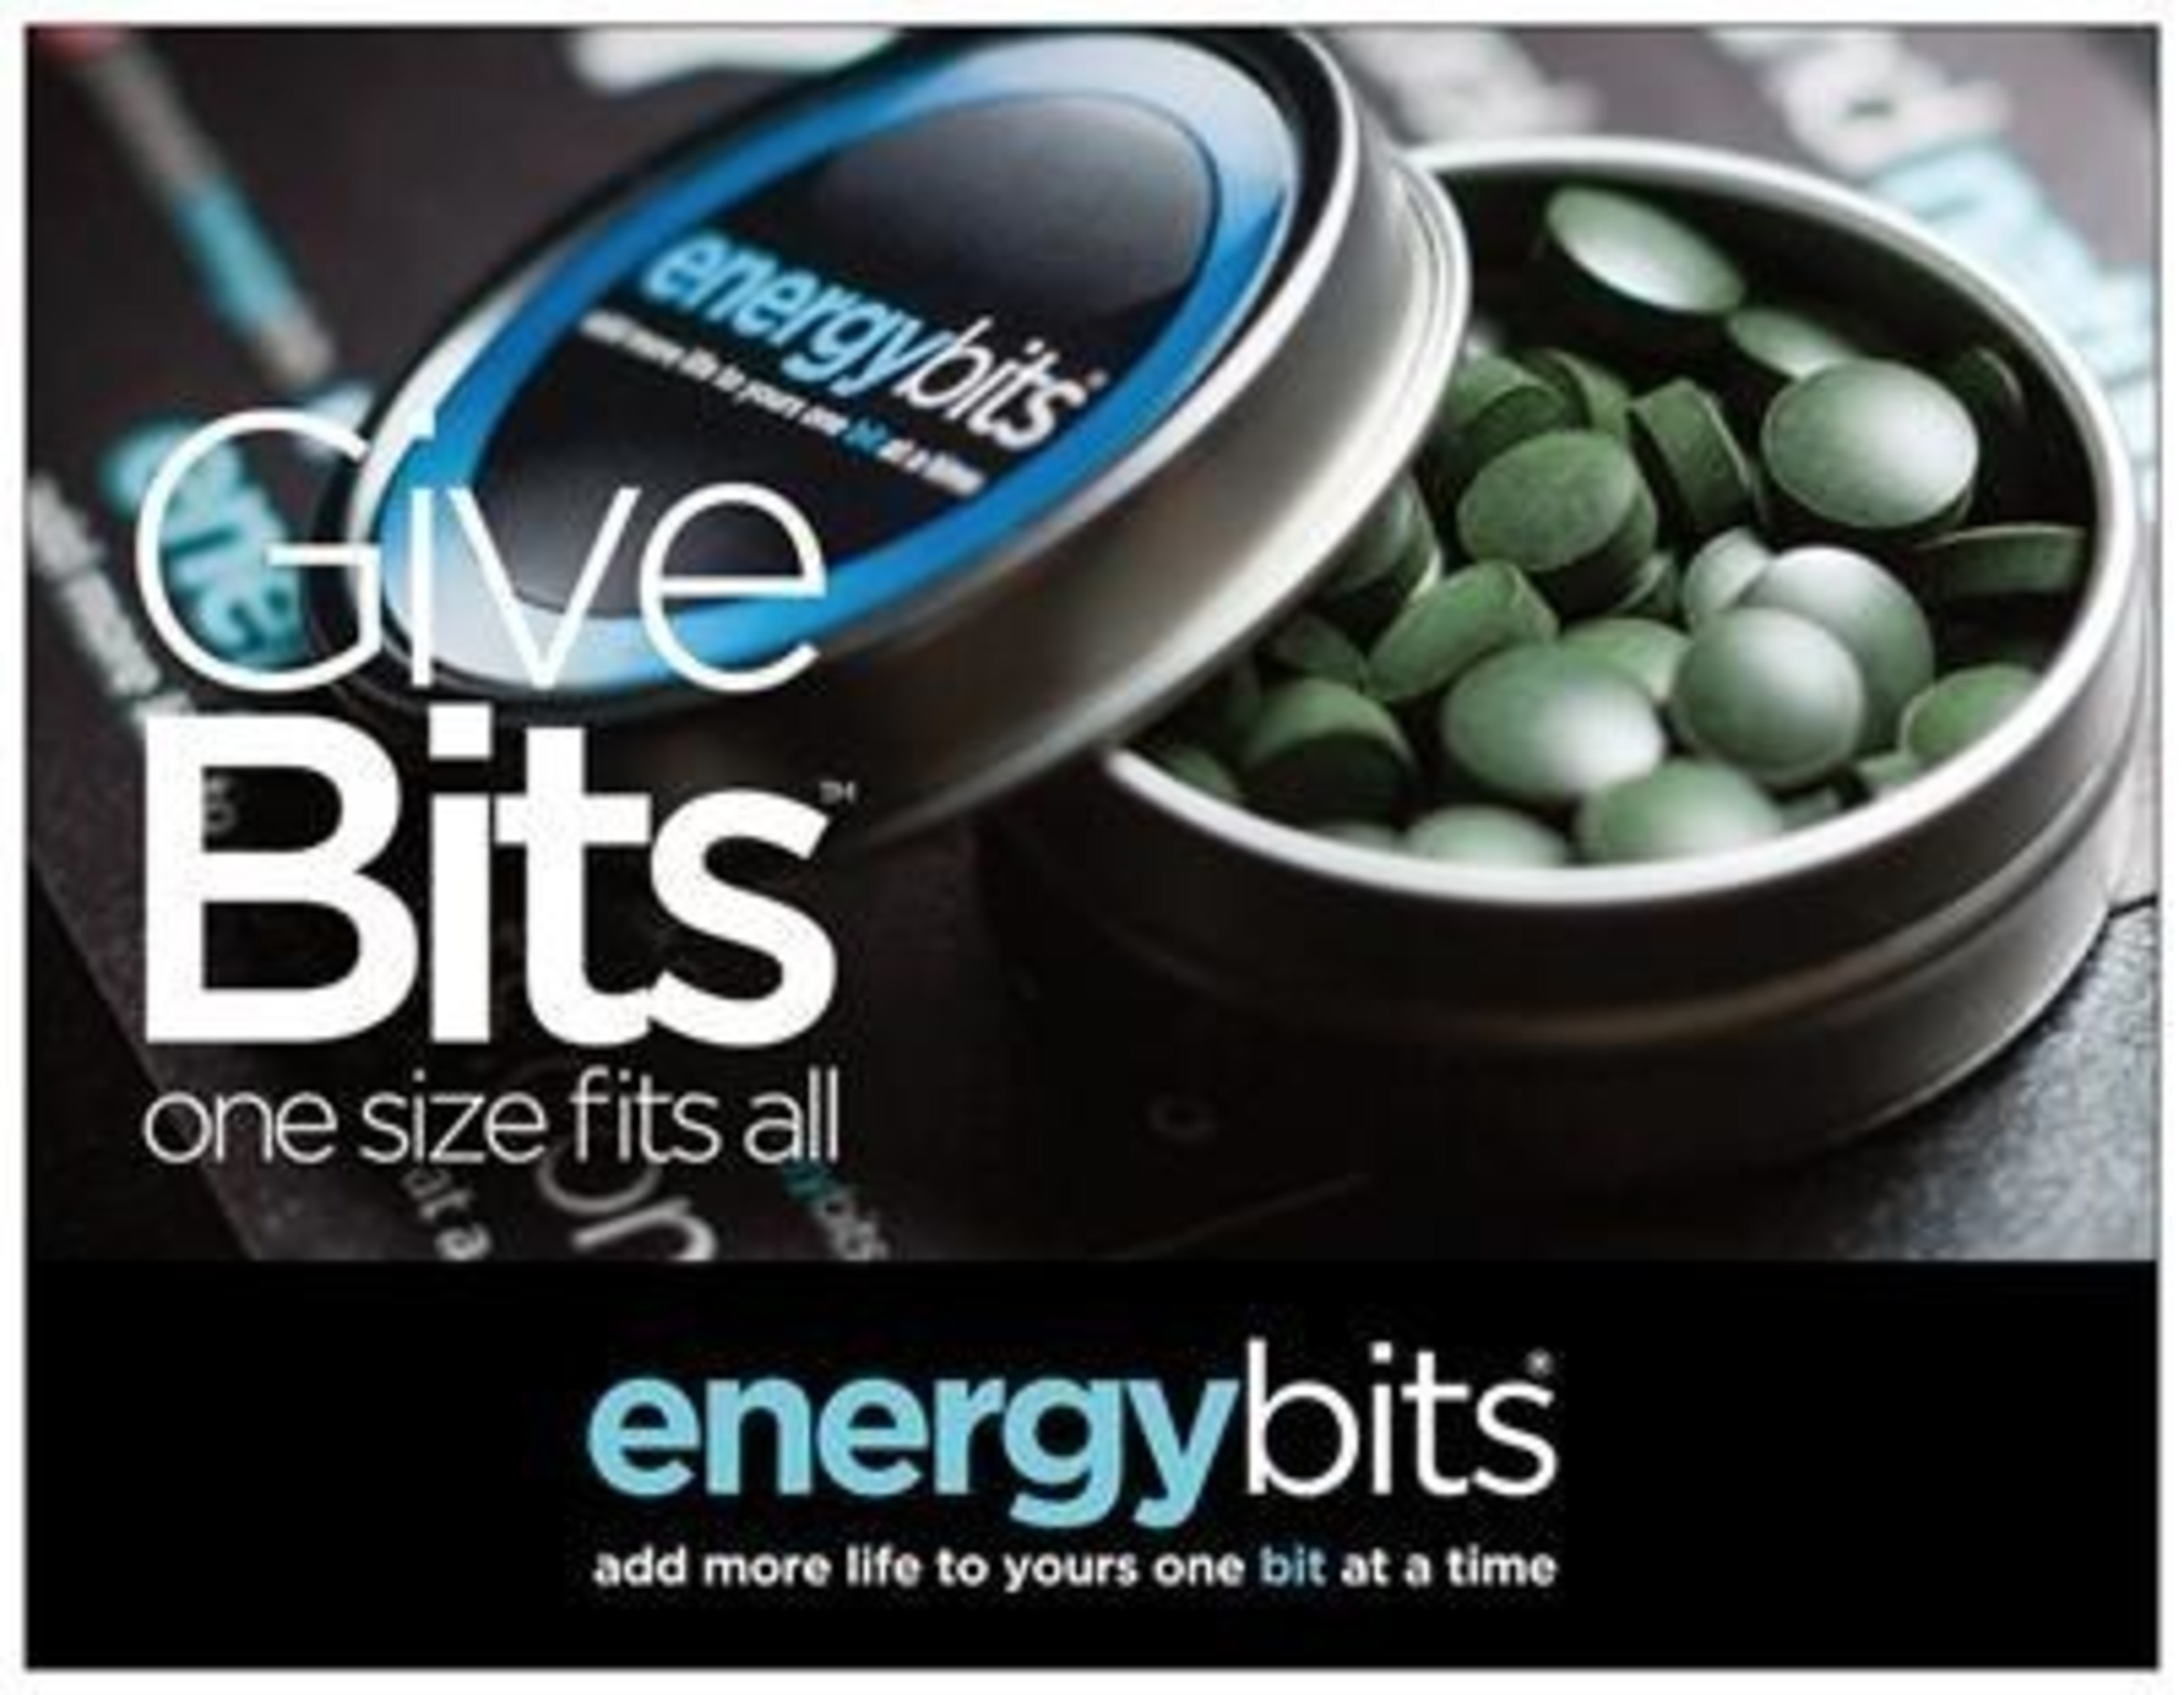 For a gift that fits, give bits - ENERGYbits